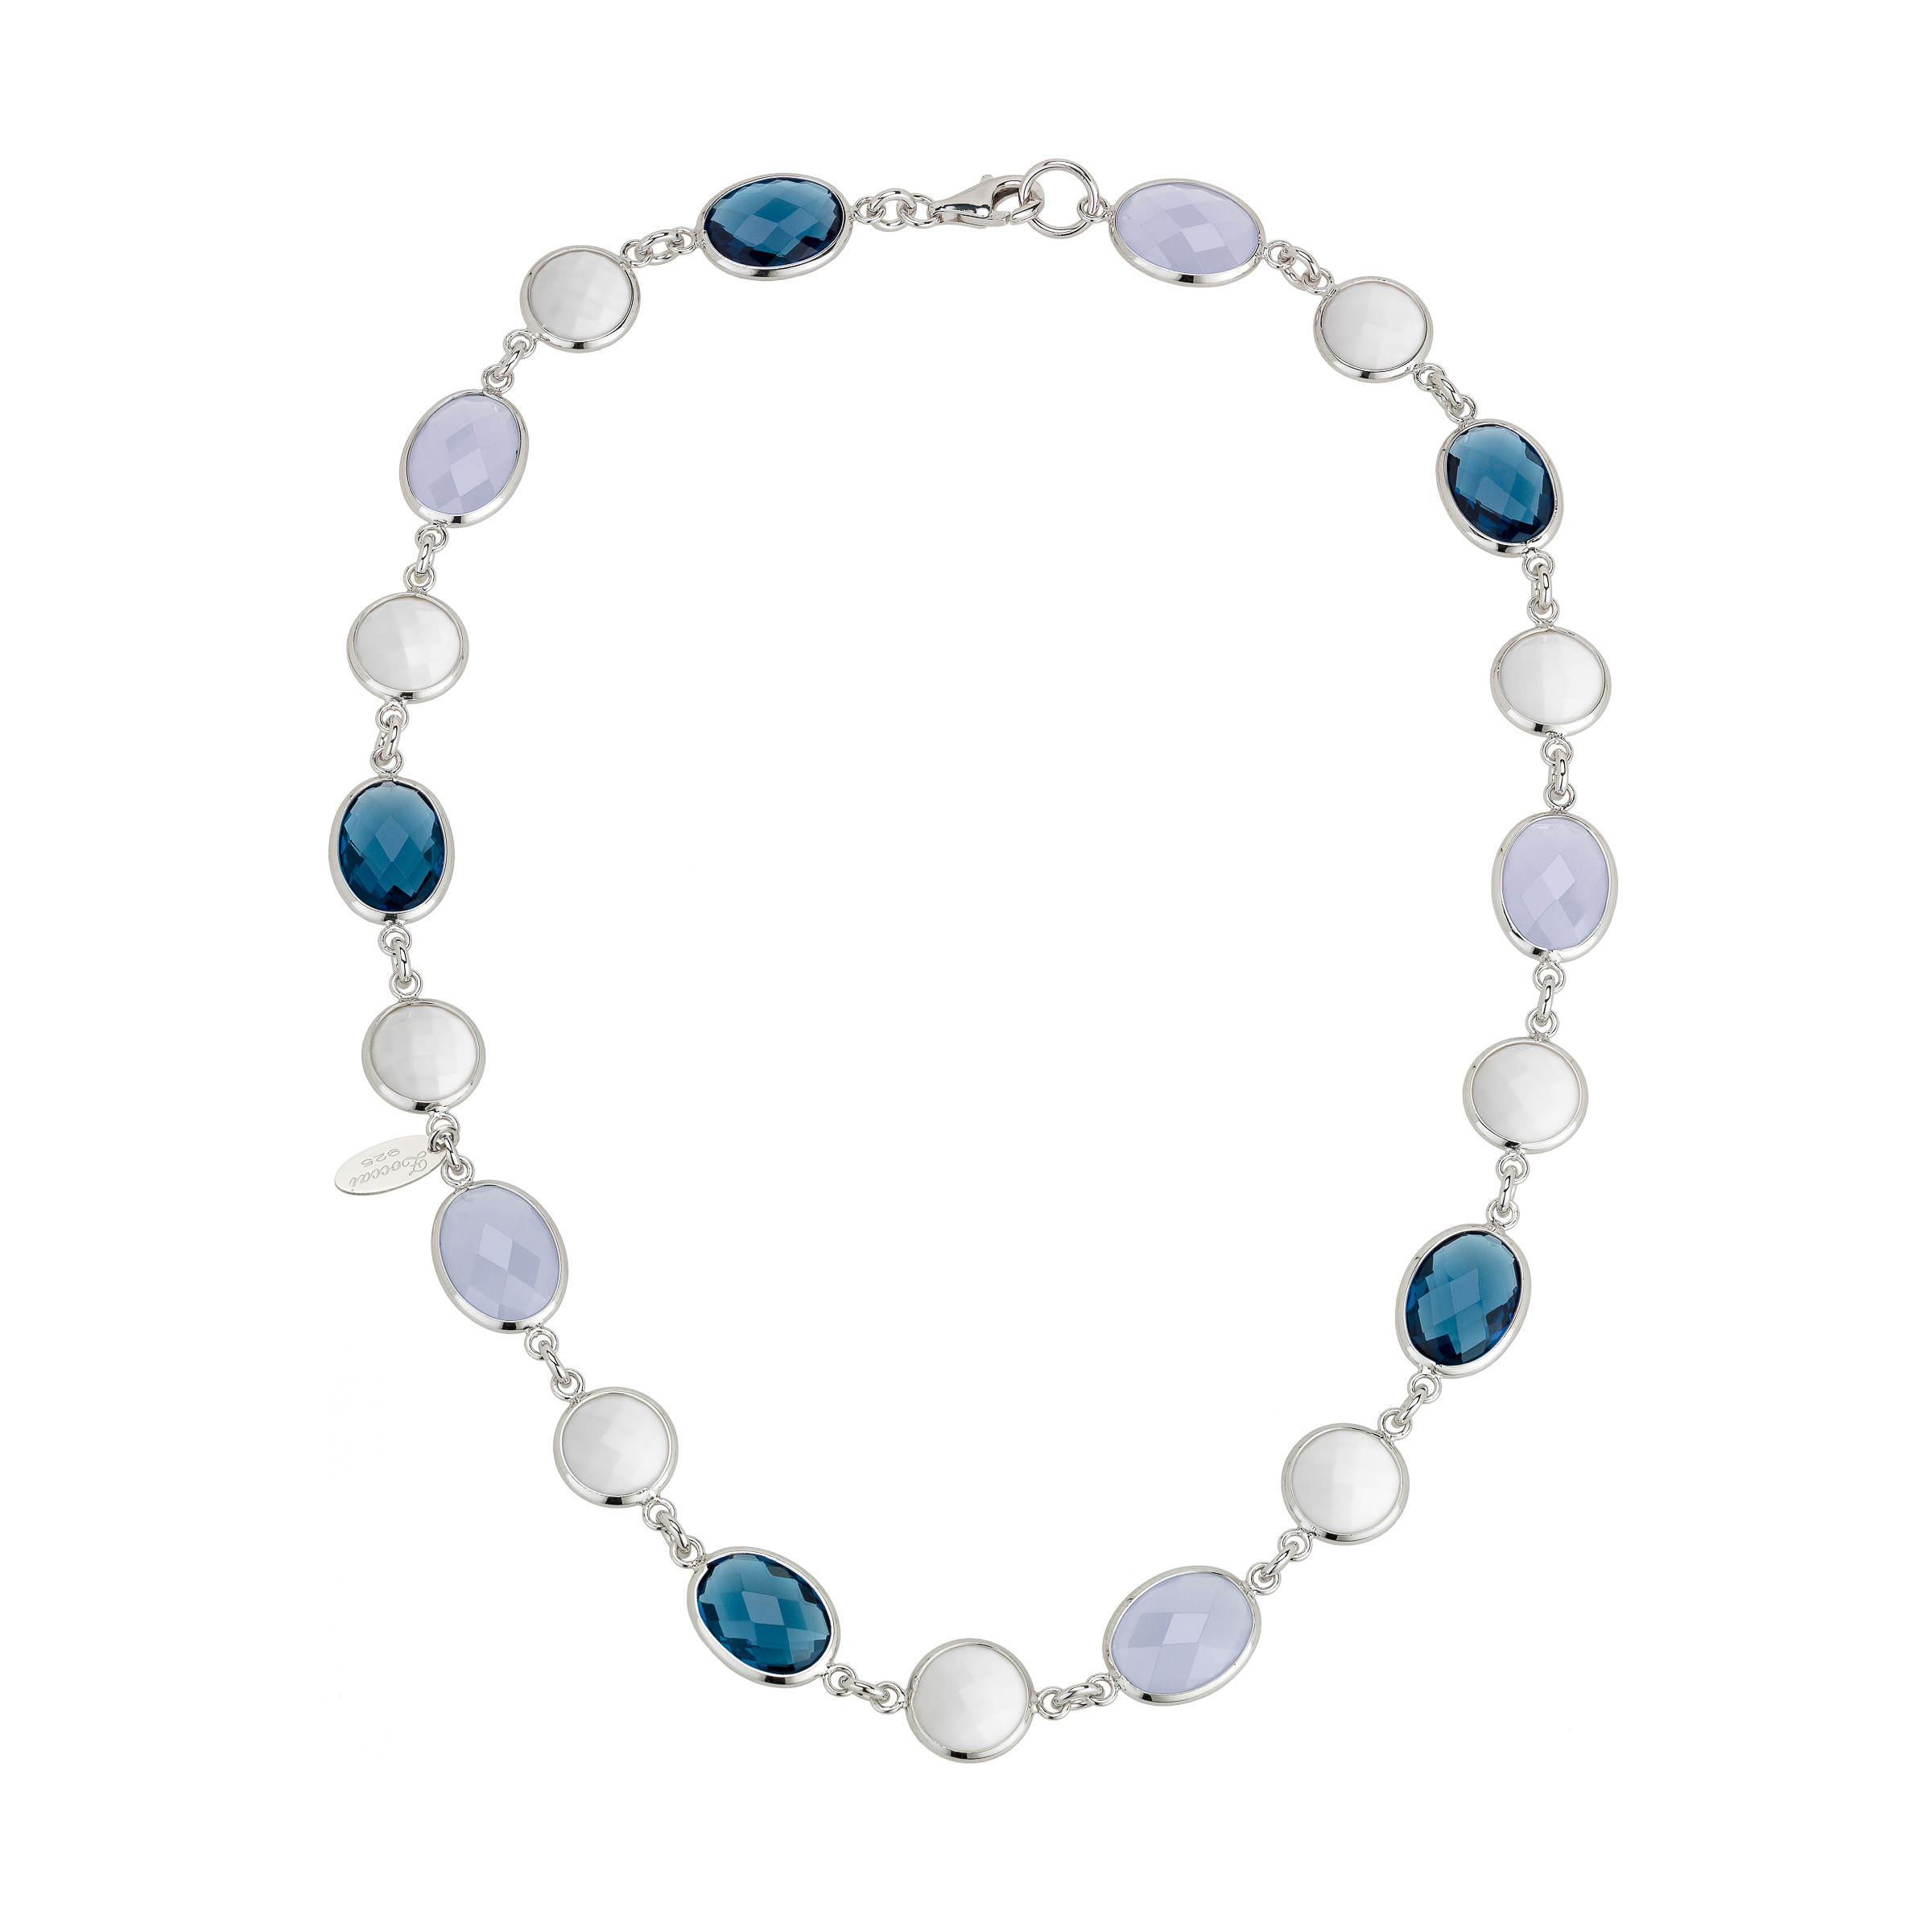 Zoccai 925 Agate, London Blue Topaz & Chalcedony Necklace in Sterling Silver by Richline Group